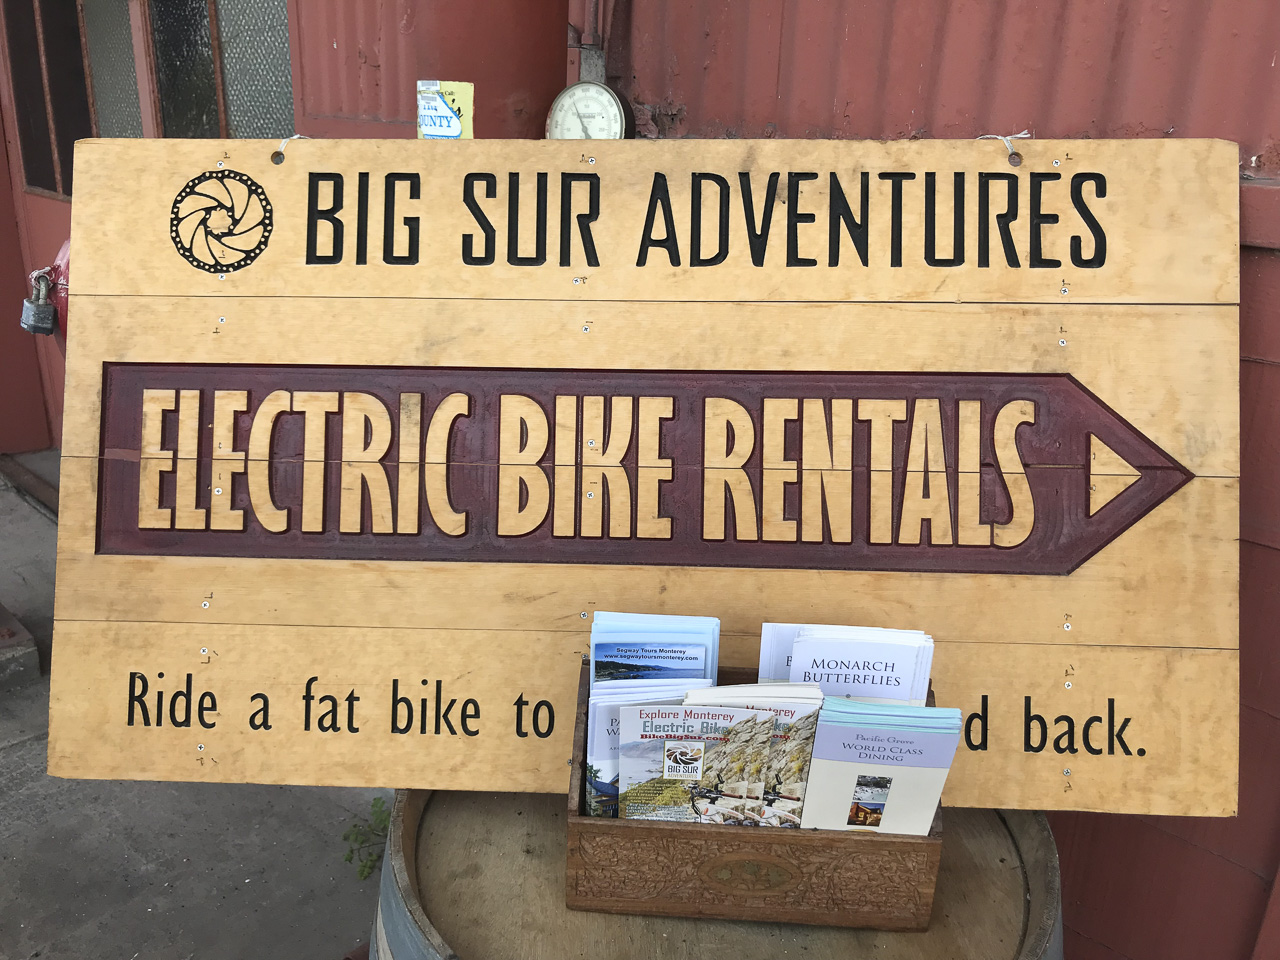 Big Sur Adventures does the 17 Mile Drive on E-Bikes